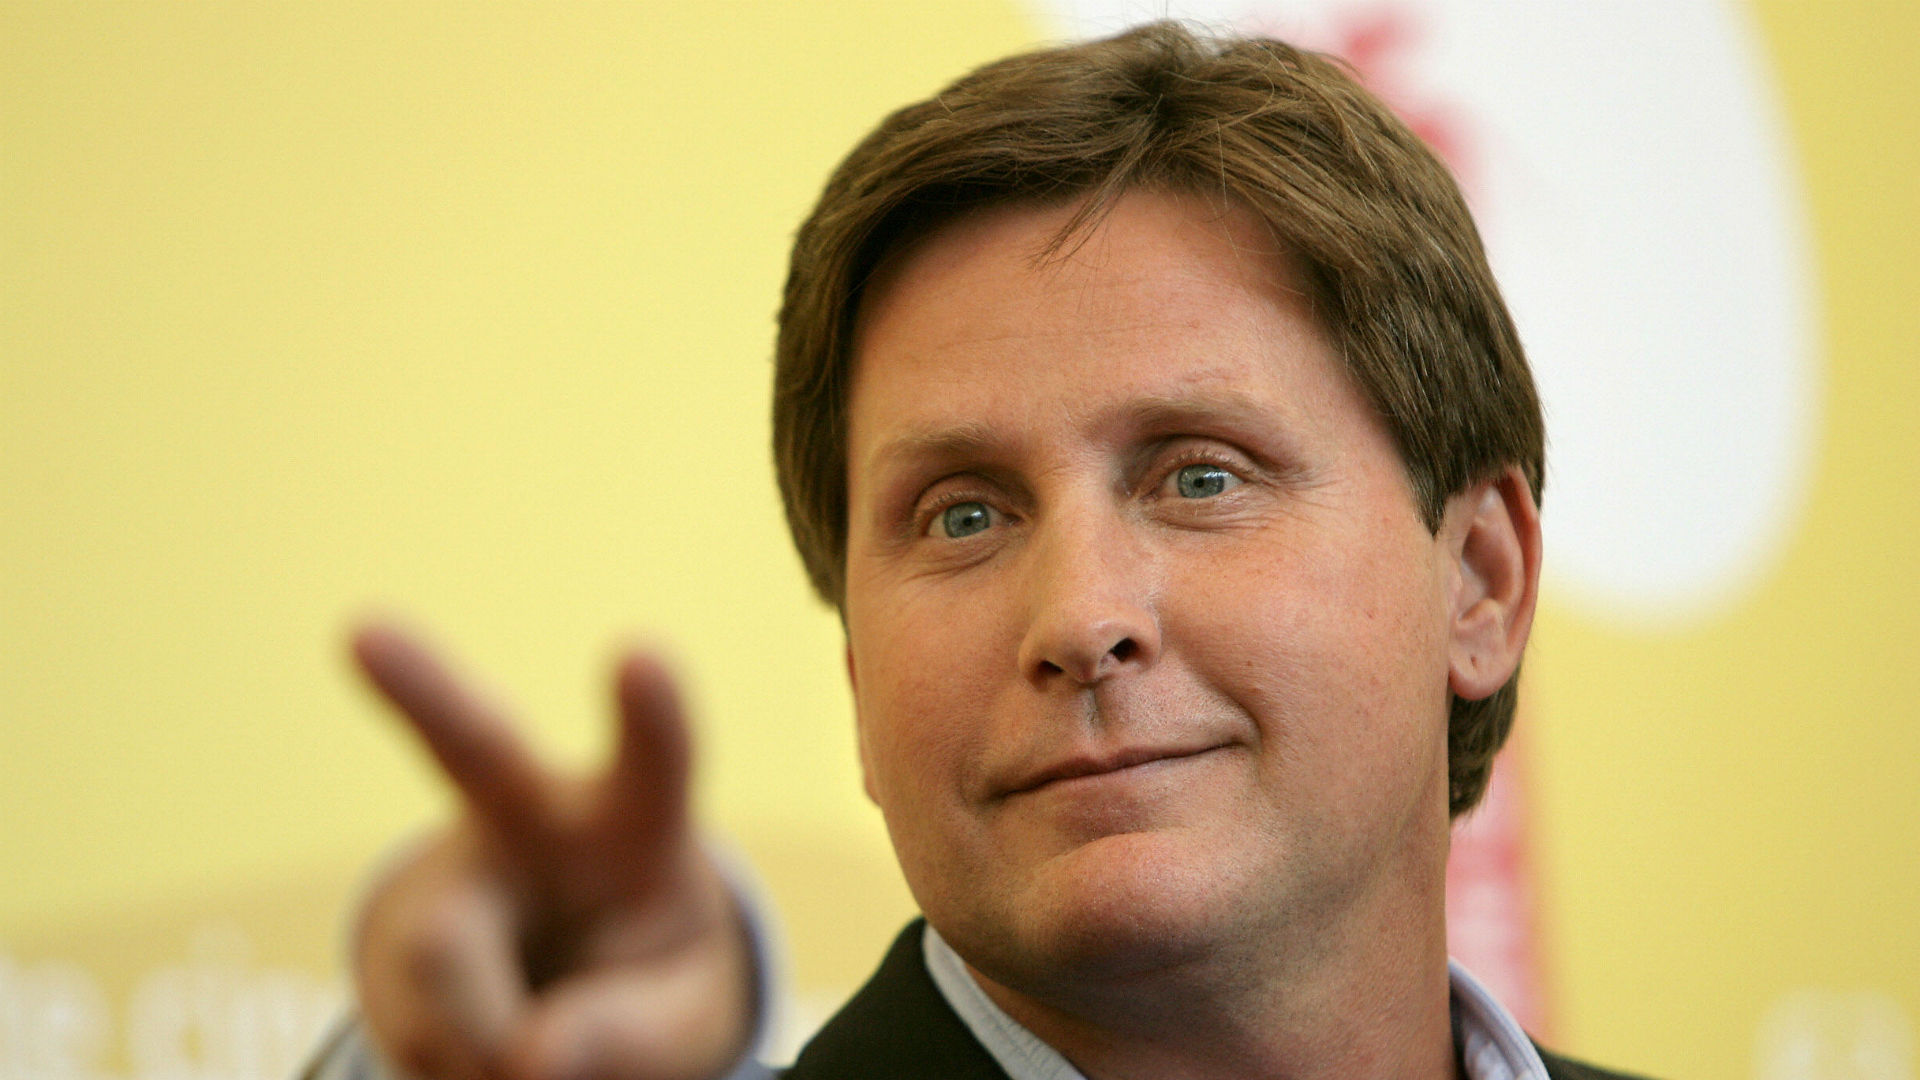 Emilio Estevez, aka Gordon Bombay, cheers on Ducks in Game 5 versus Blackhawks